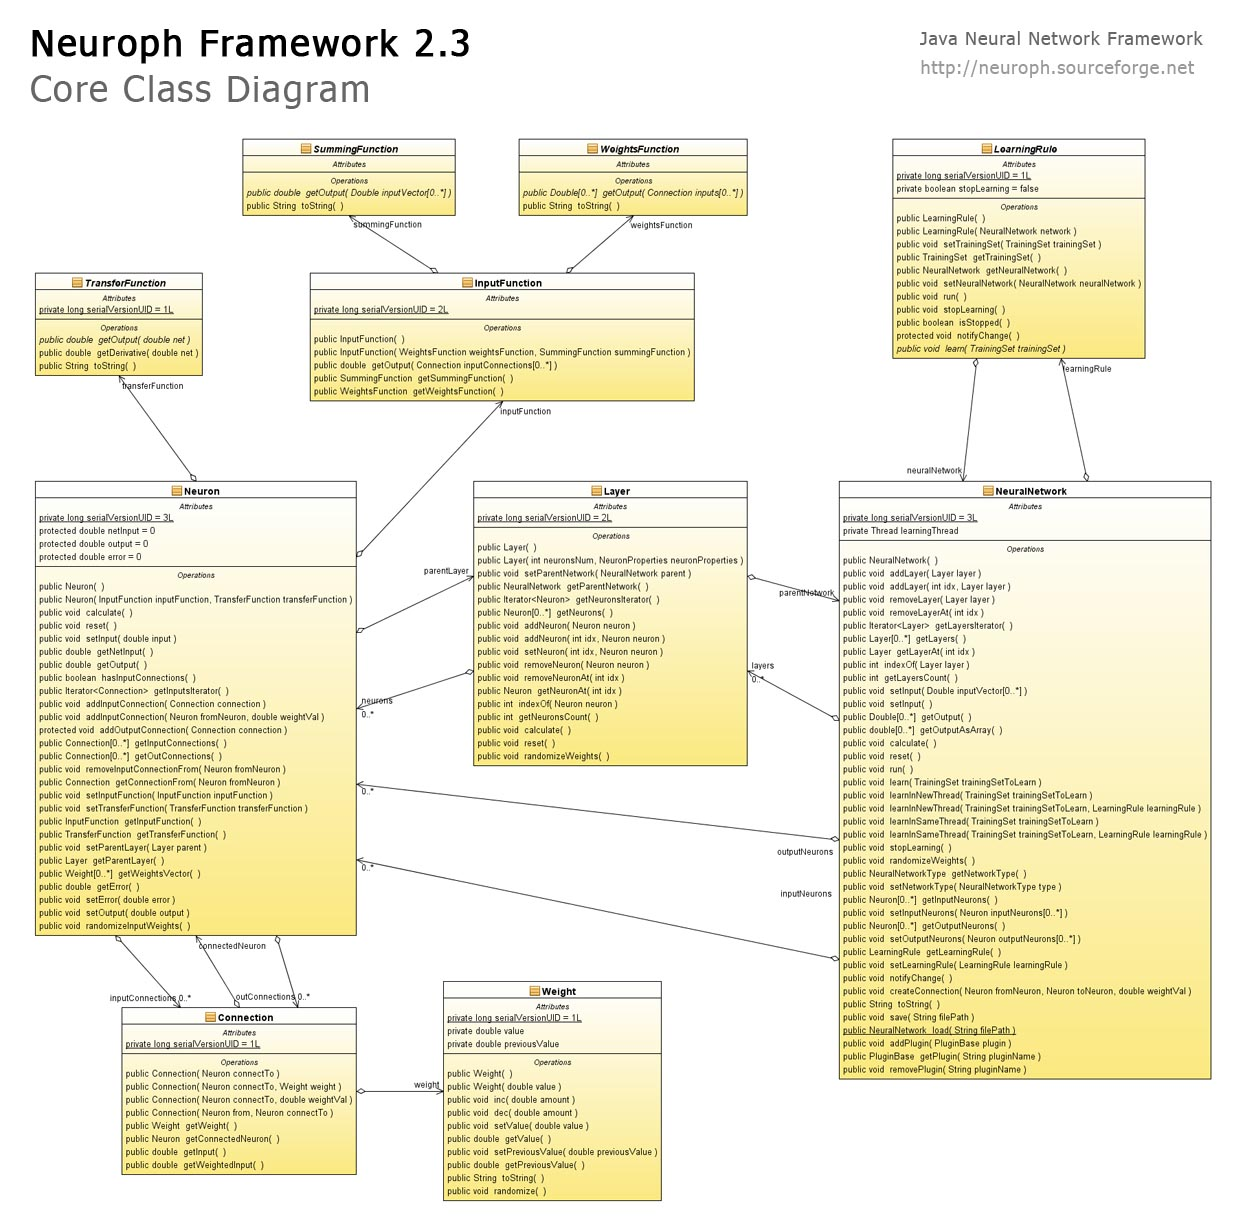 java neural network framework neuroph : class diagram tutorial - findchart.co